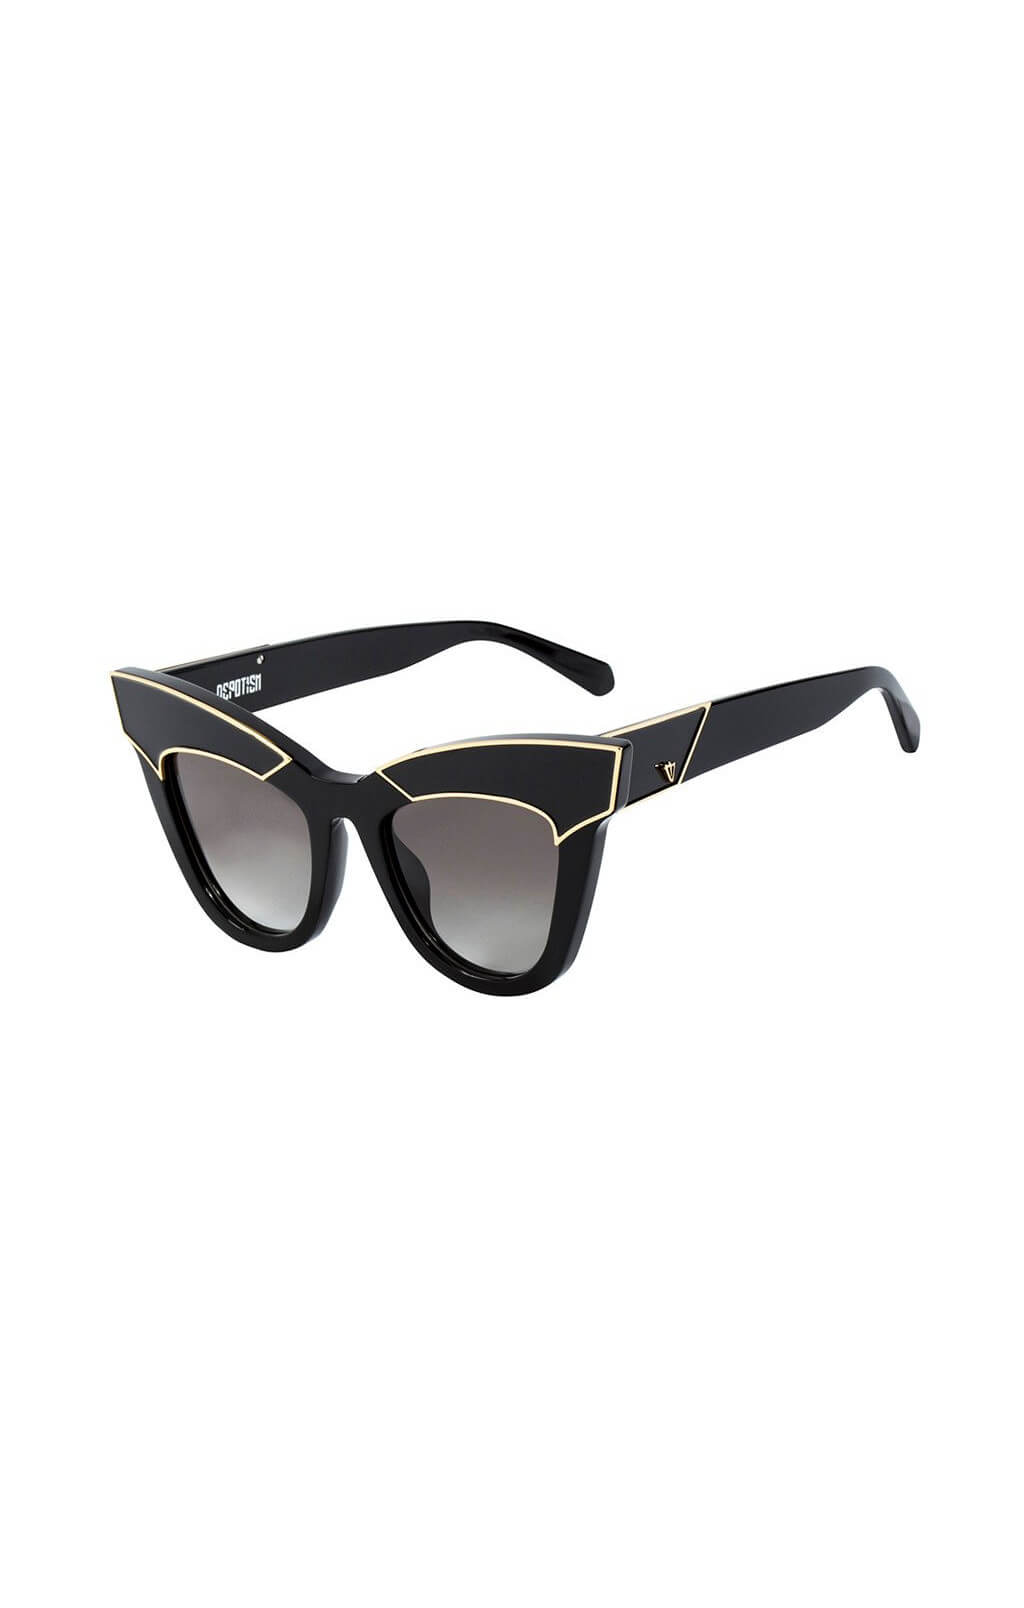 valley eyewear depotism sunglasses black gold